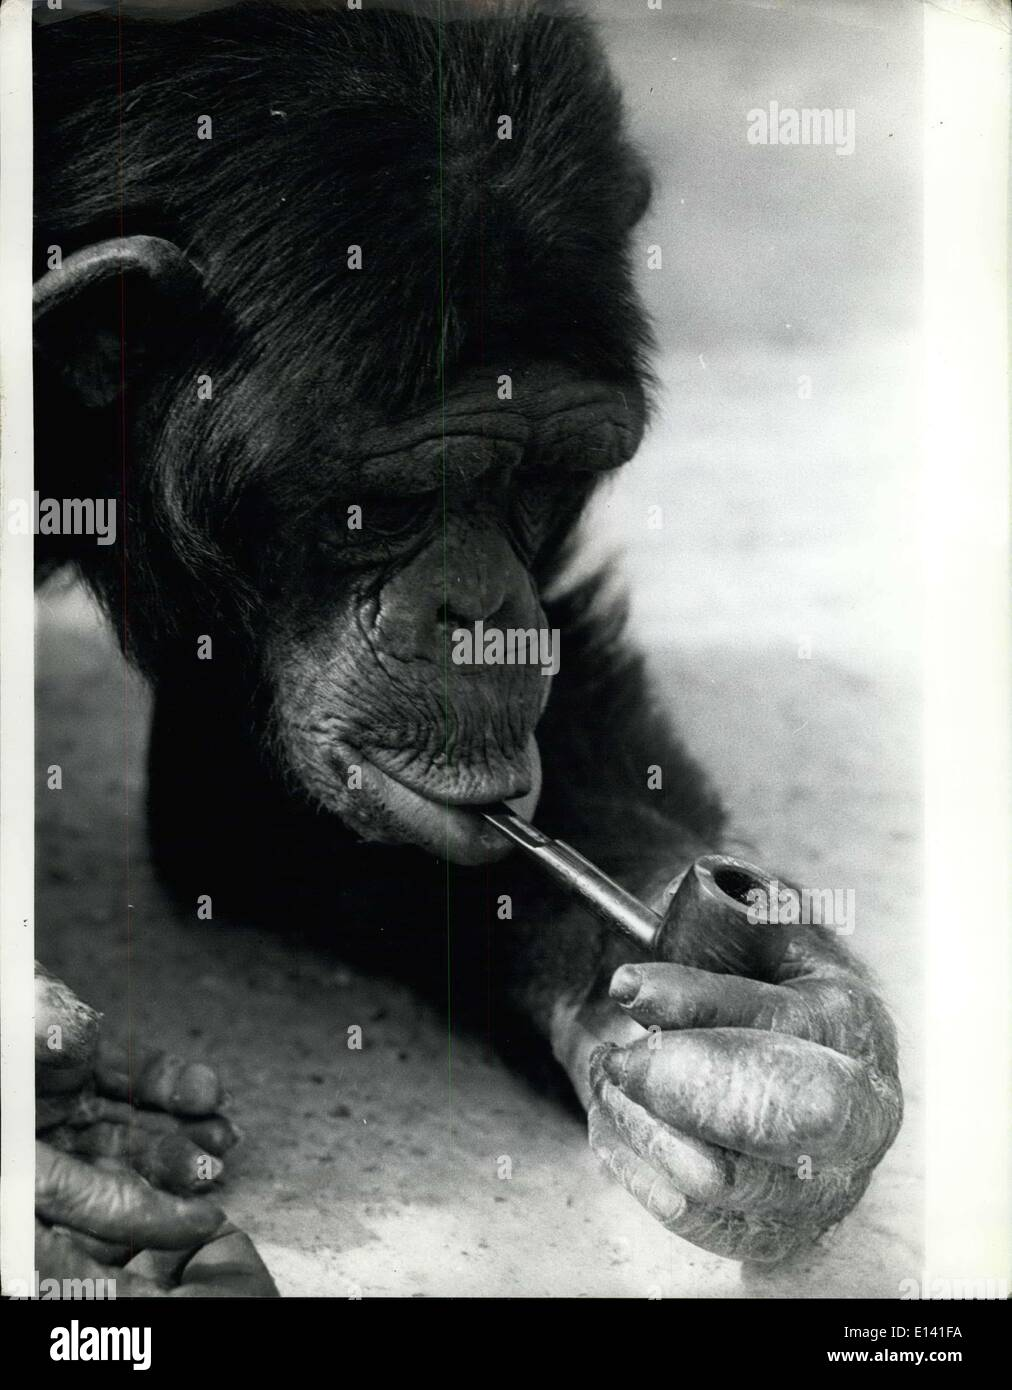 Mar. 31, 2012 - William, 20 year old Chimpanzee, has been a pipe man for nearly 15 yrs. The Zoo owner had tried to wean him from it, But he becomes a miserable old man. - Stock Image